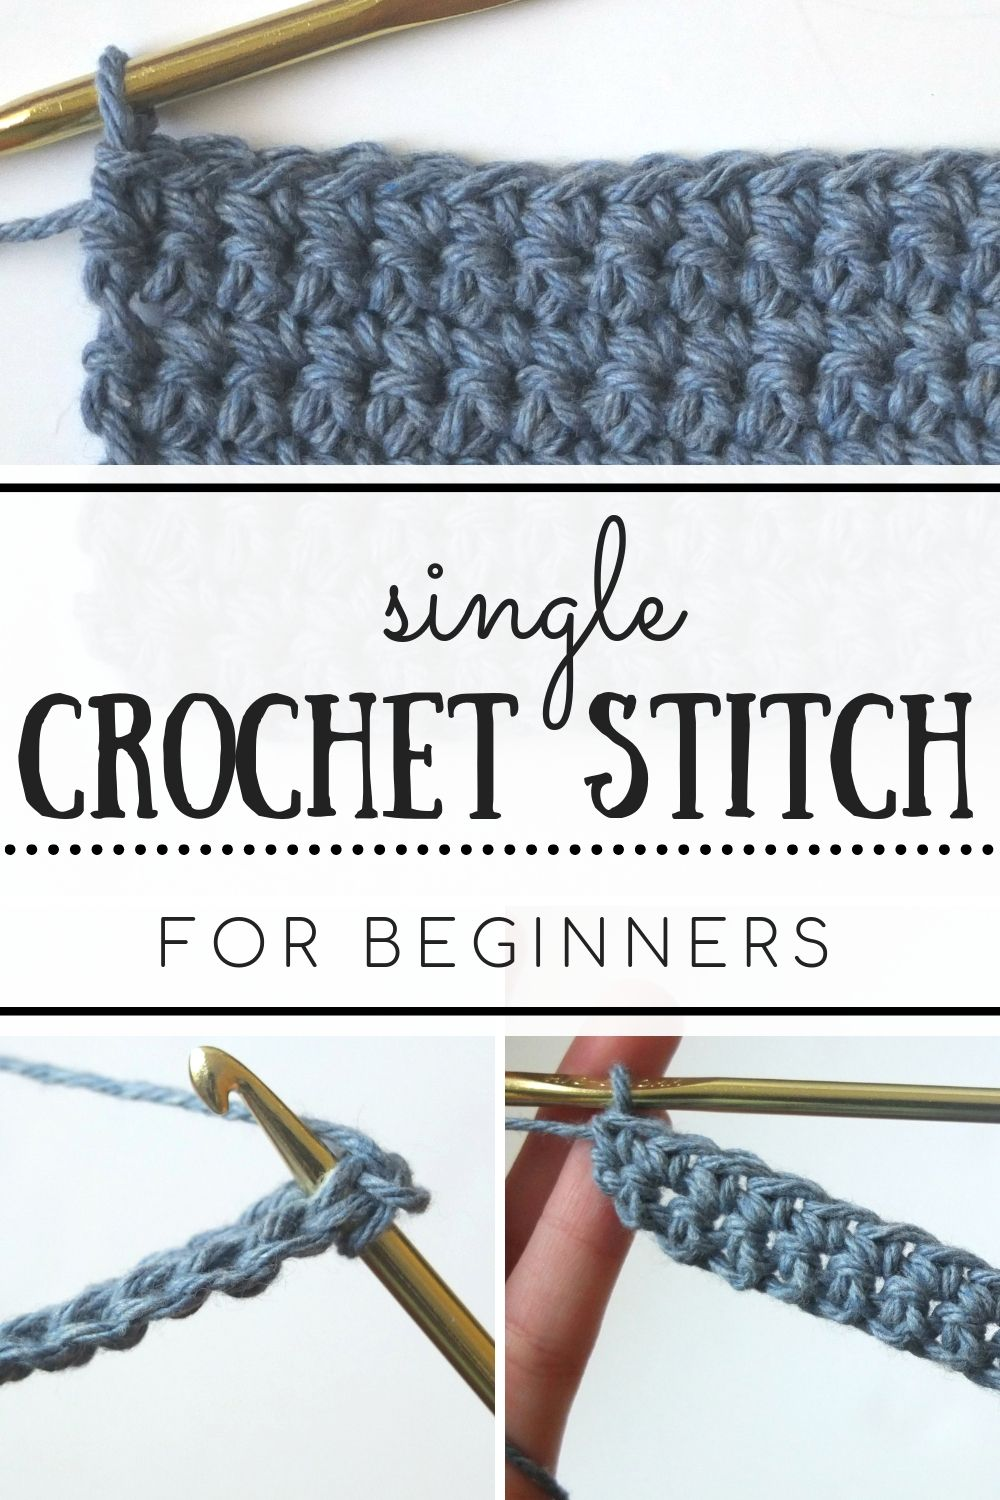 Crochet basics step by step